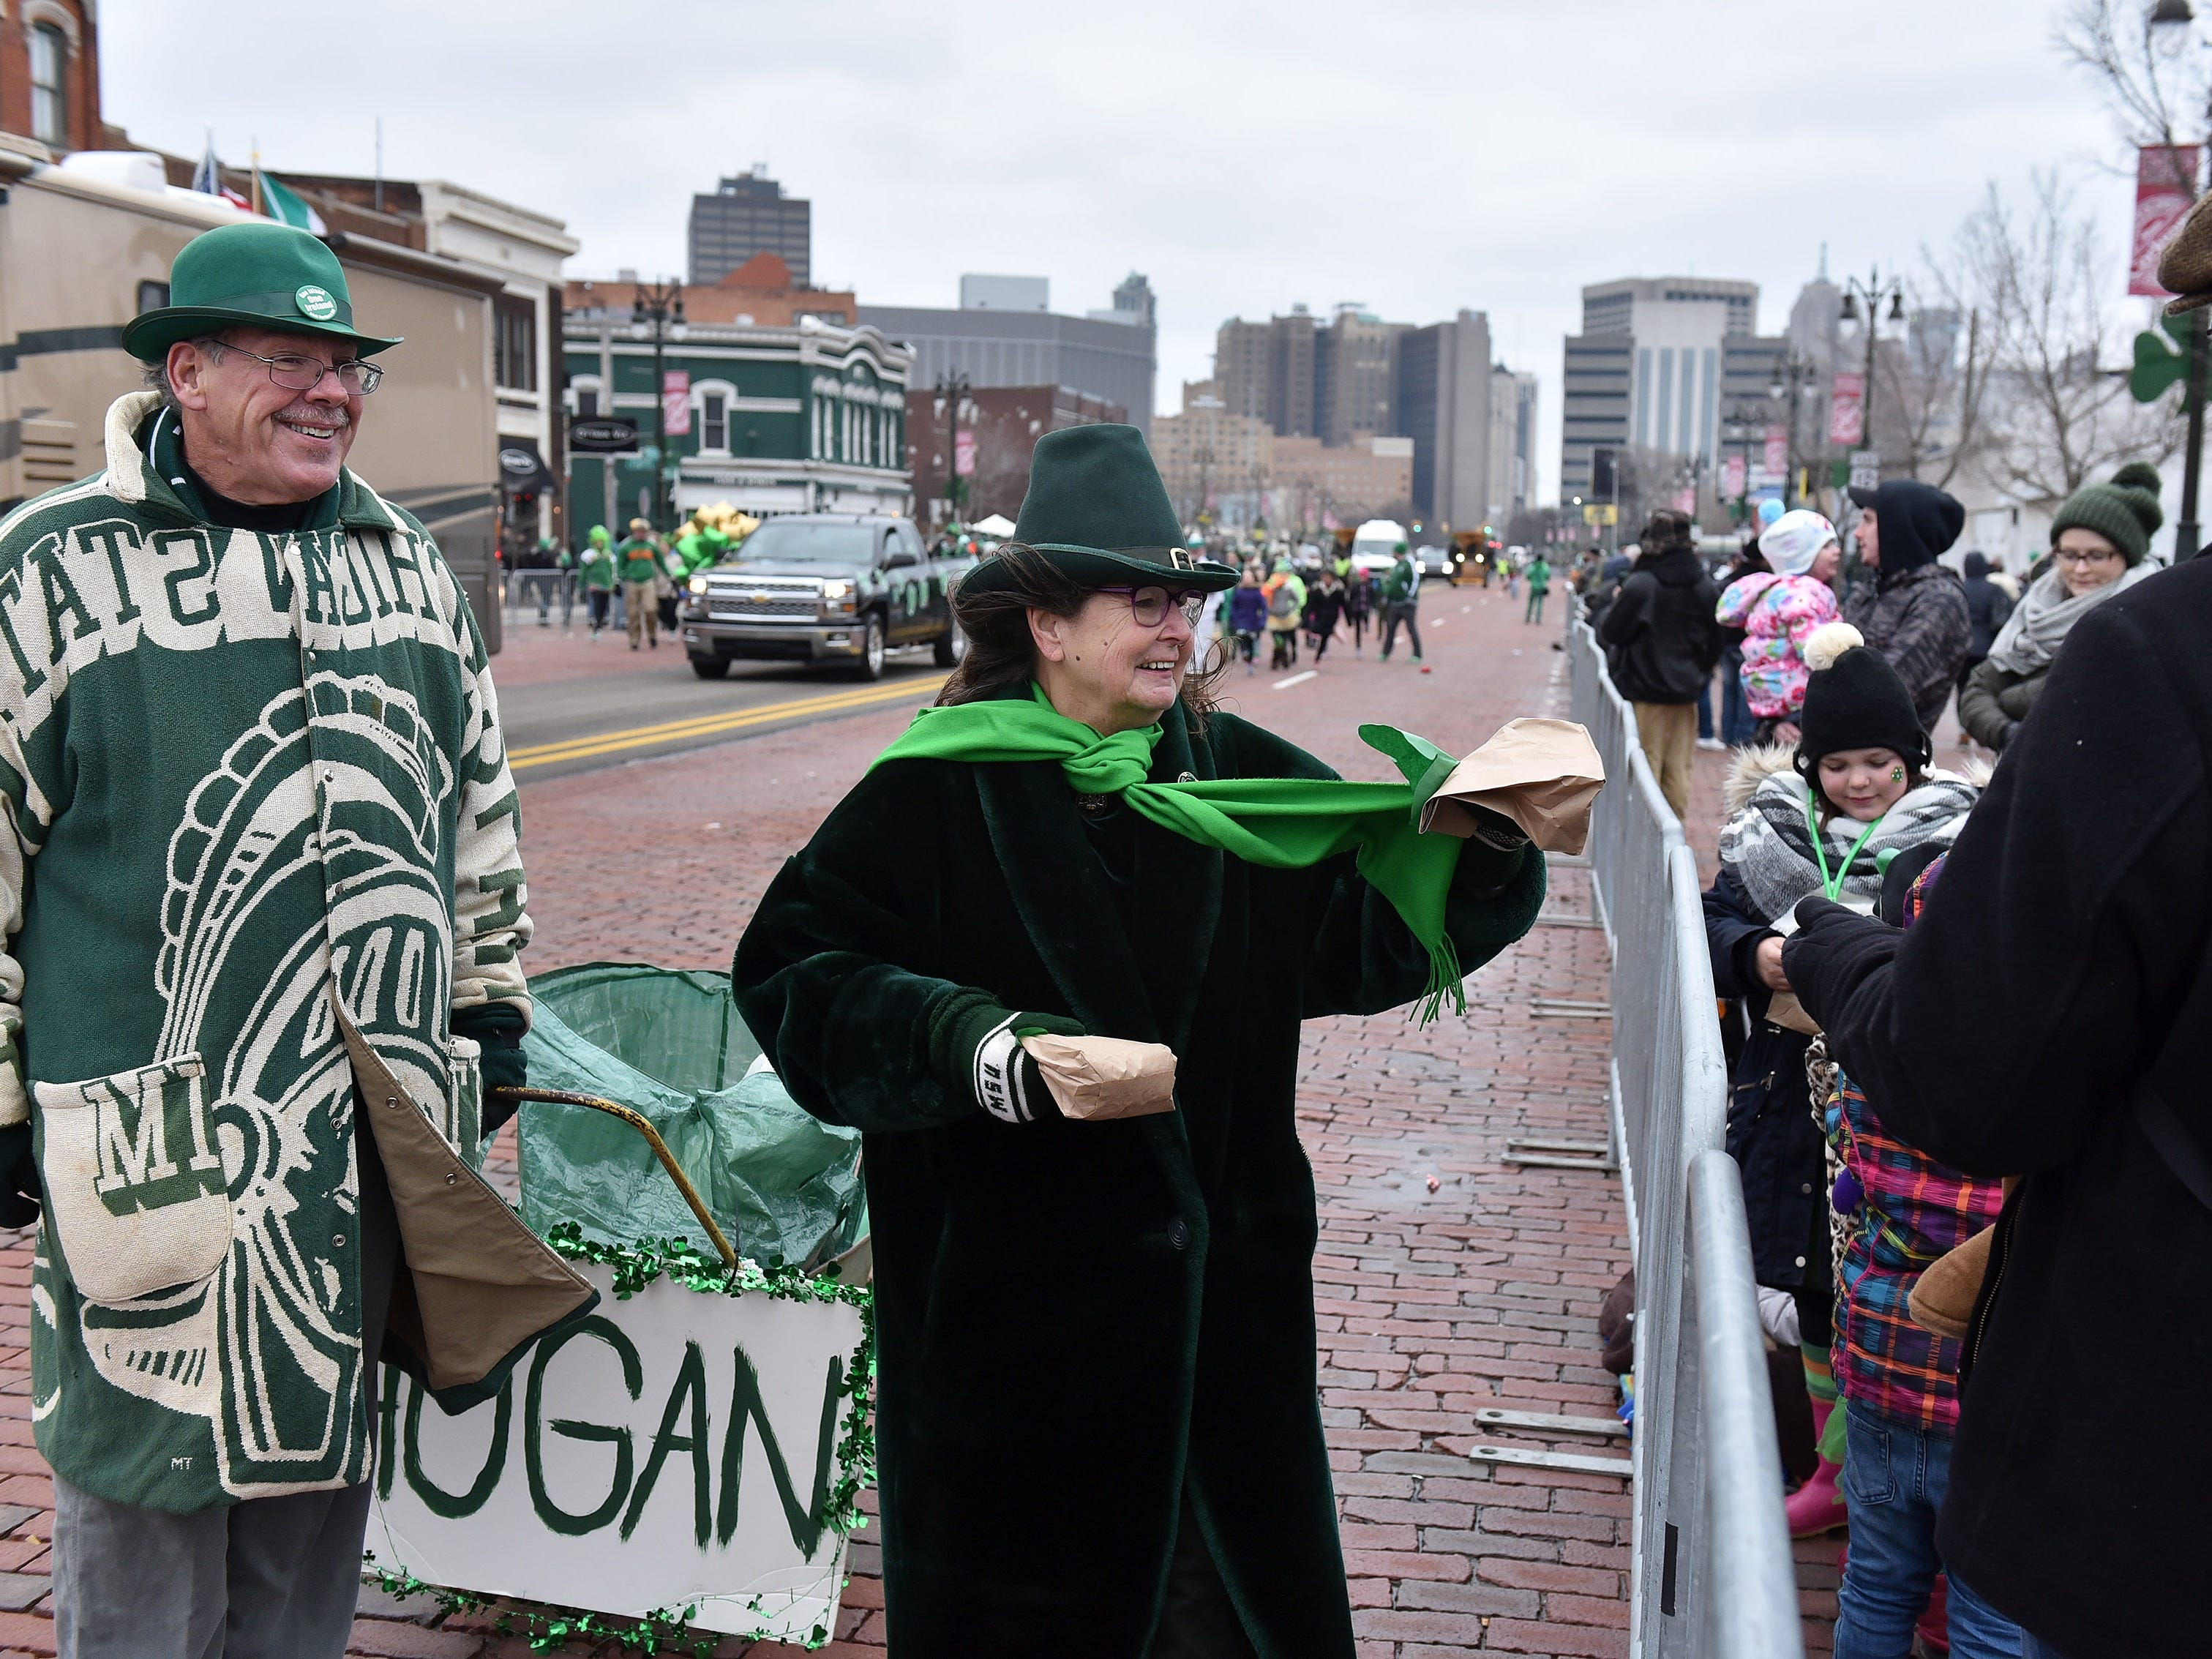 Michael and Maureen Hogan from the Gaelic League hand out bags with toys, candy and beads in them at the 61st annual St. Patrick's Day Parade.